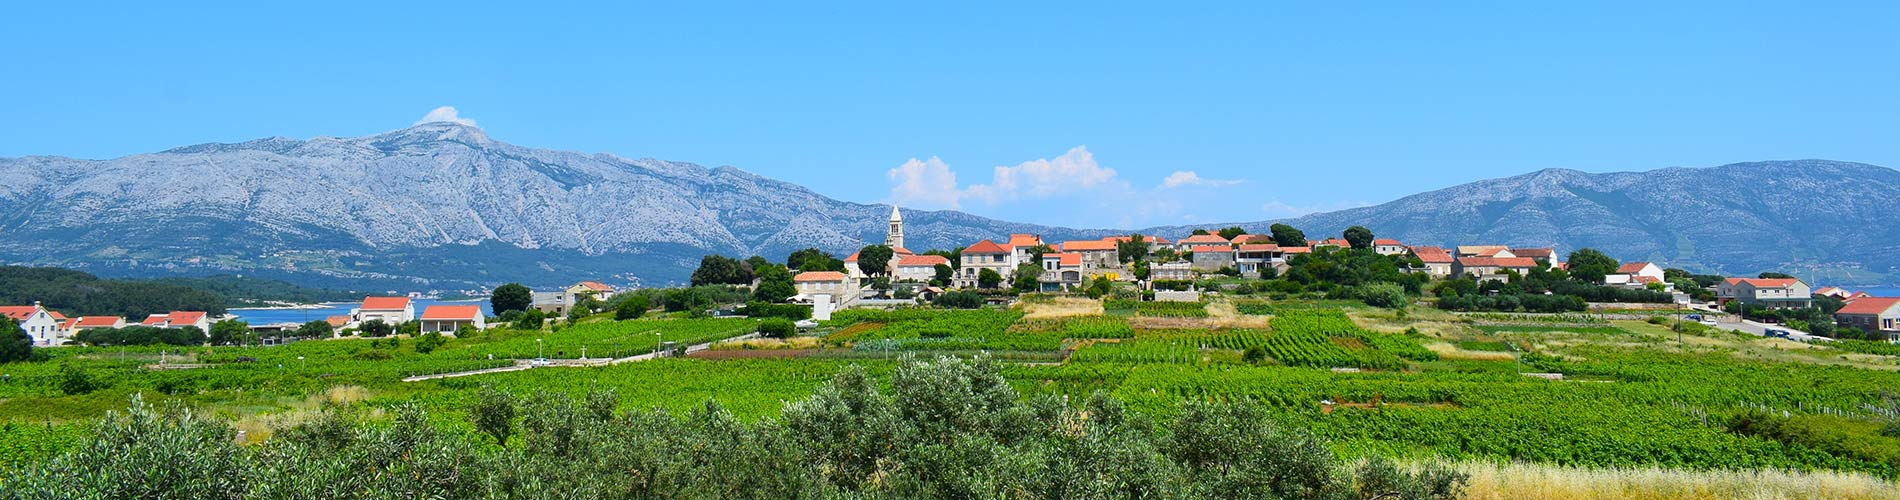 Lumbarda Vinyards Holiday Korcula   Croatia.jpg